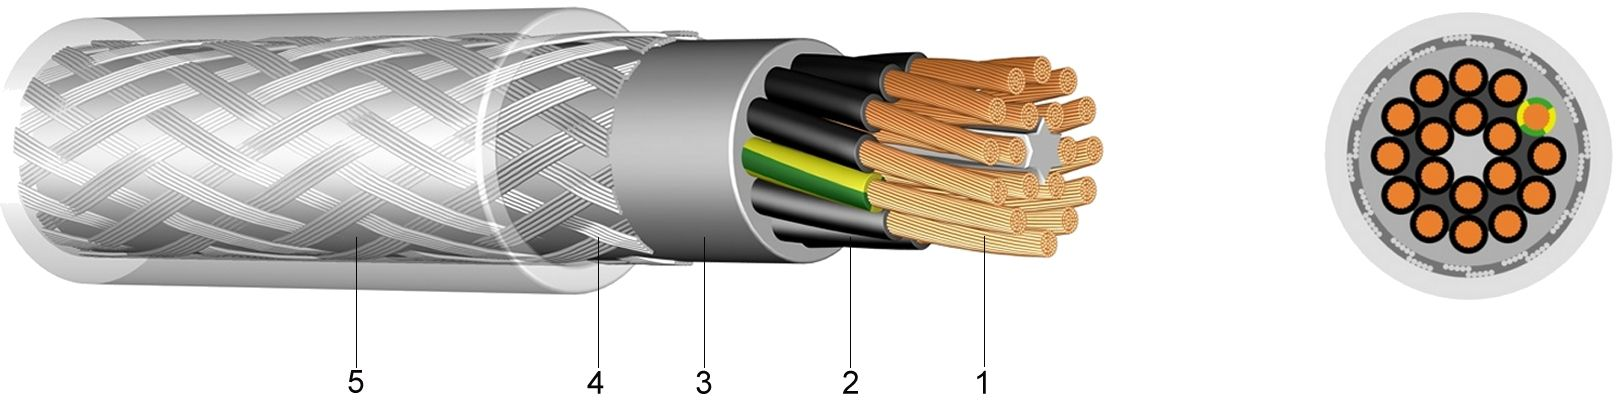 YSLYQY - PVC Control Cable with Steel Wire Braiding - PVC control ...